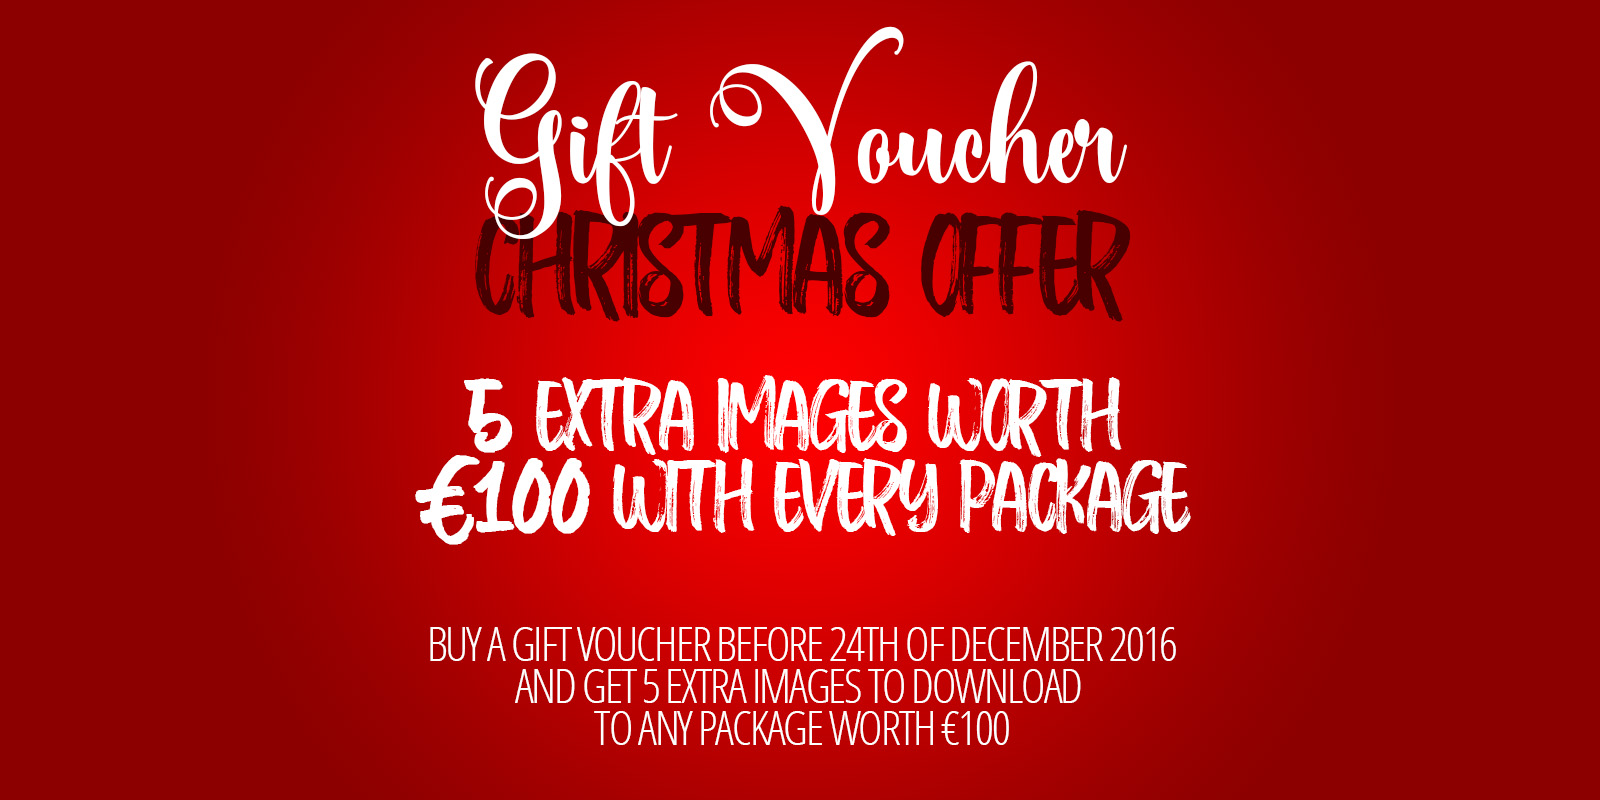 gift voucher christmas offer